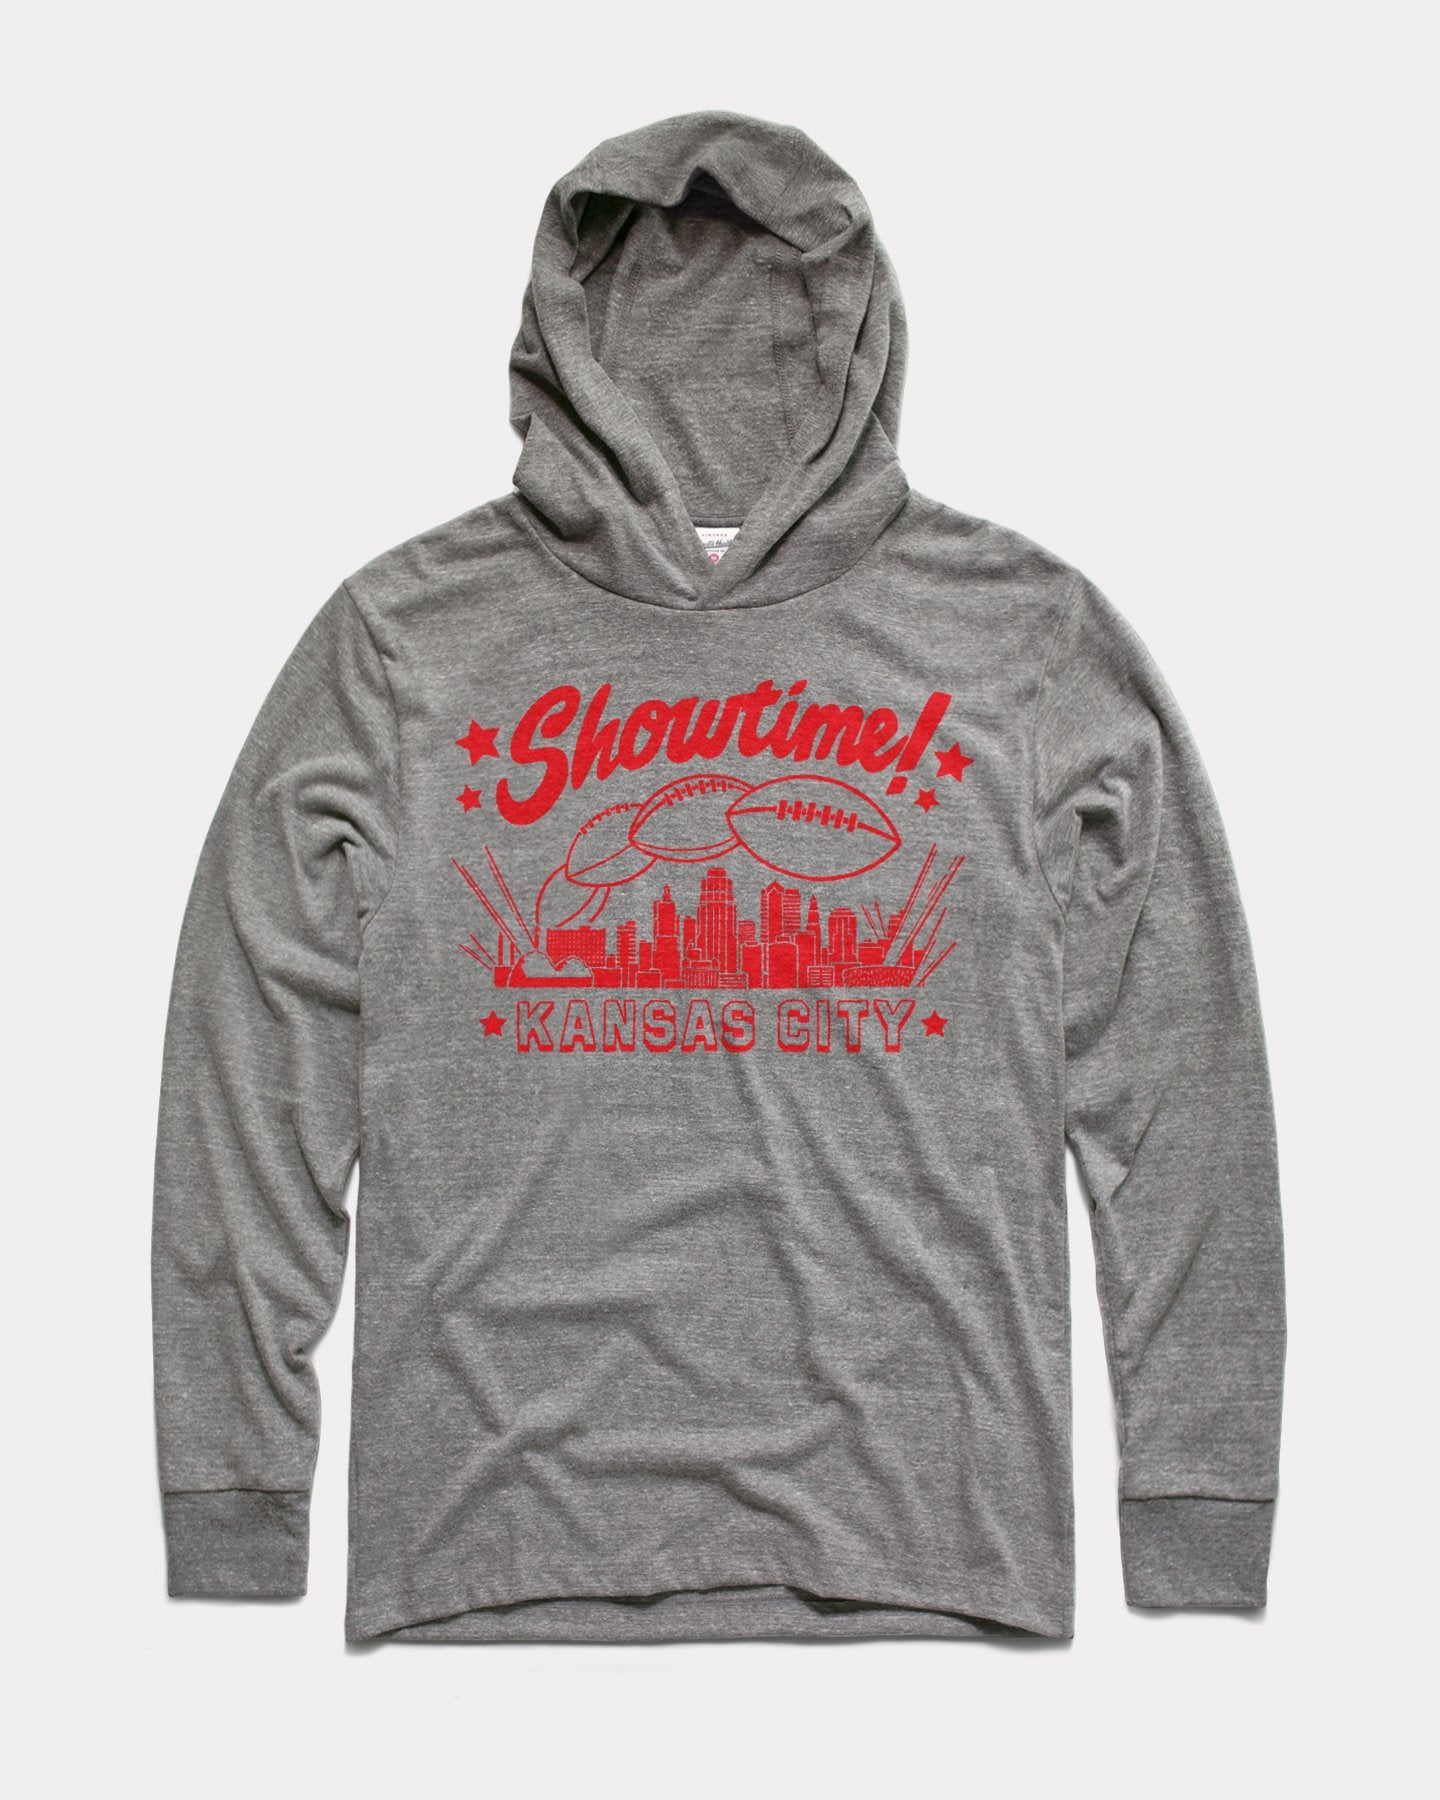 Grey Showtime Kansas City Arrowhead Playoffs Vintage Lightweight Hoodie Sweatshirt